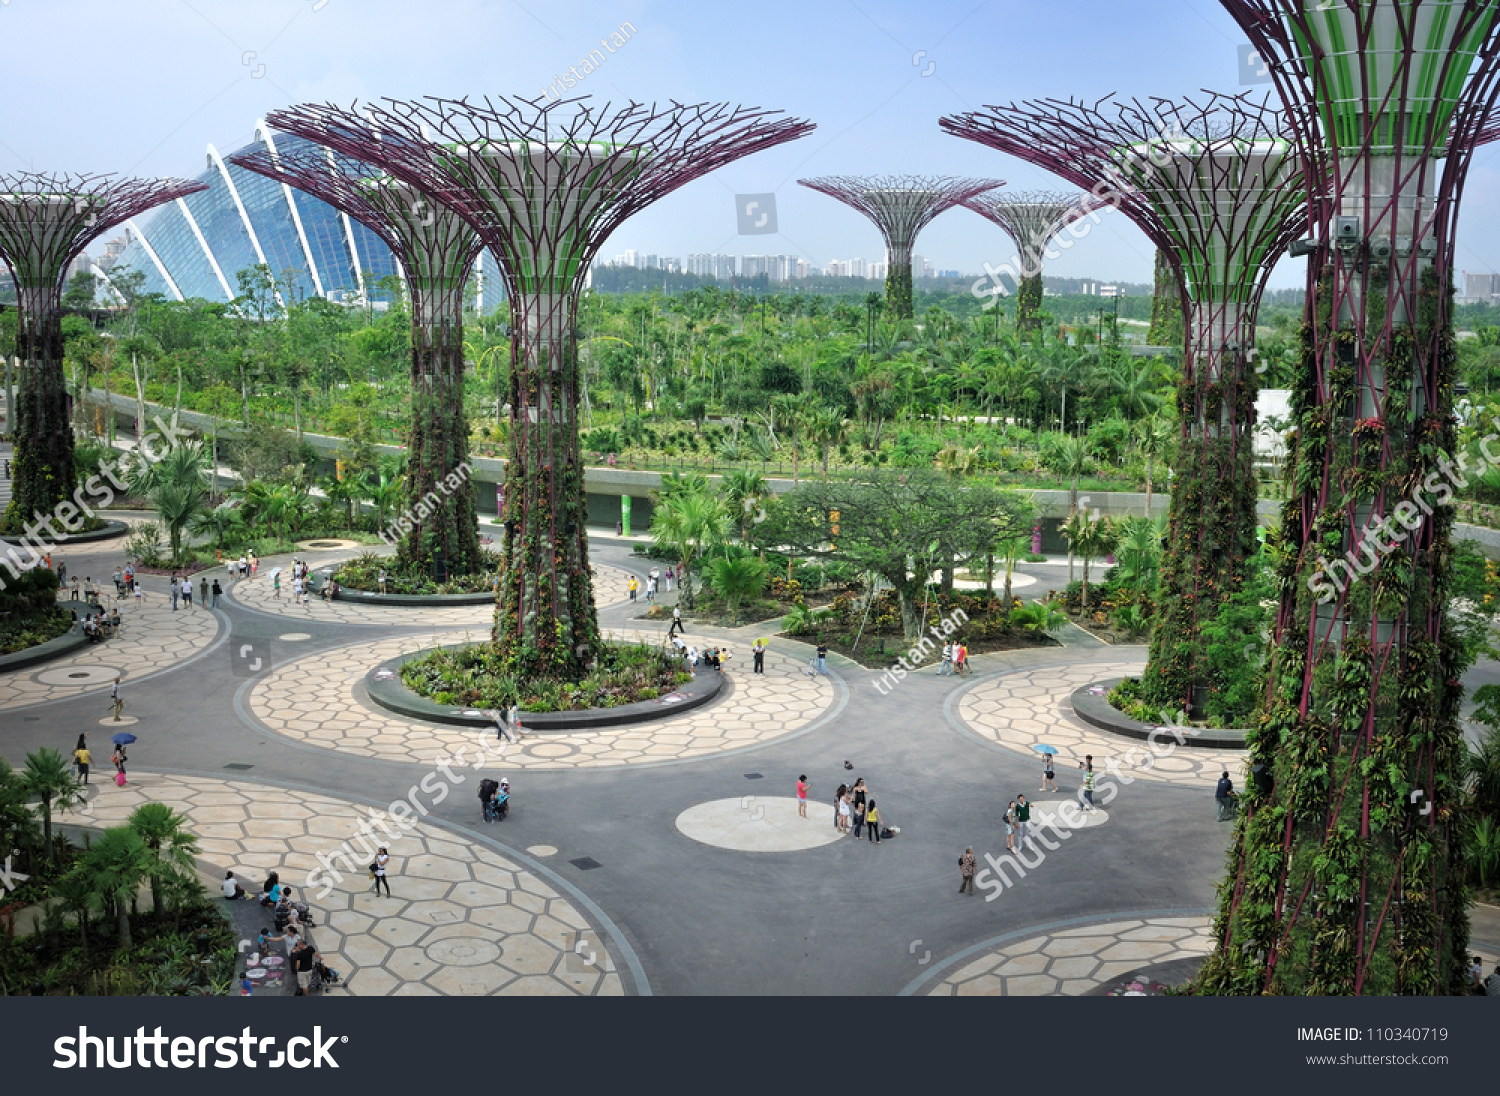 singapore aug 5 day view of the supertree grove cloud forest flower - Garden By The Bay Mrt Station